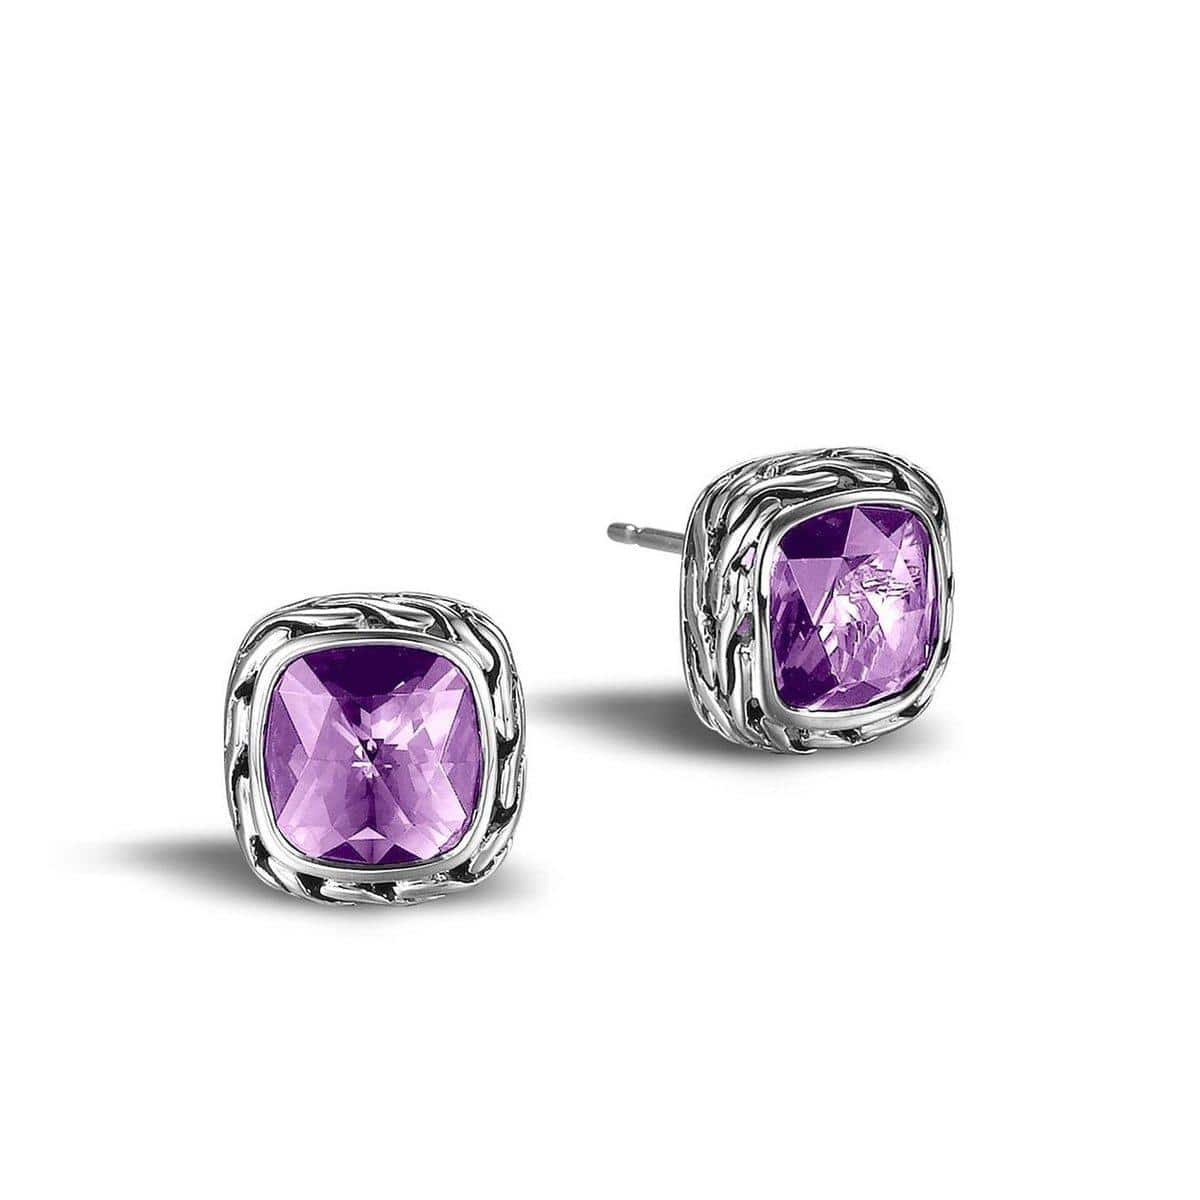 Chain Classic Chain Stud Earring with Amethyst - EBS992351AM-John Hardy-Renee Taylor Gallery